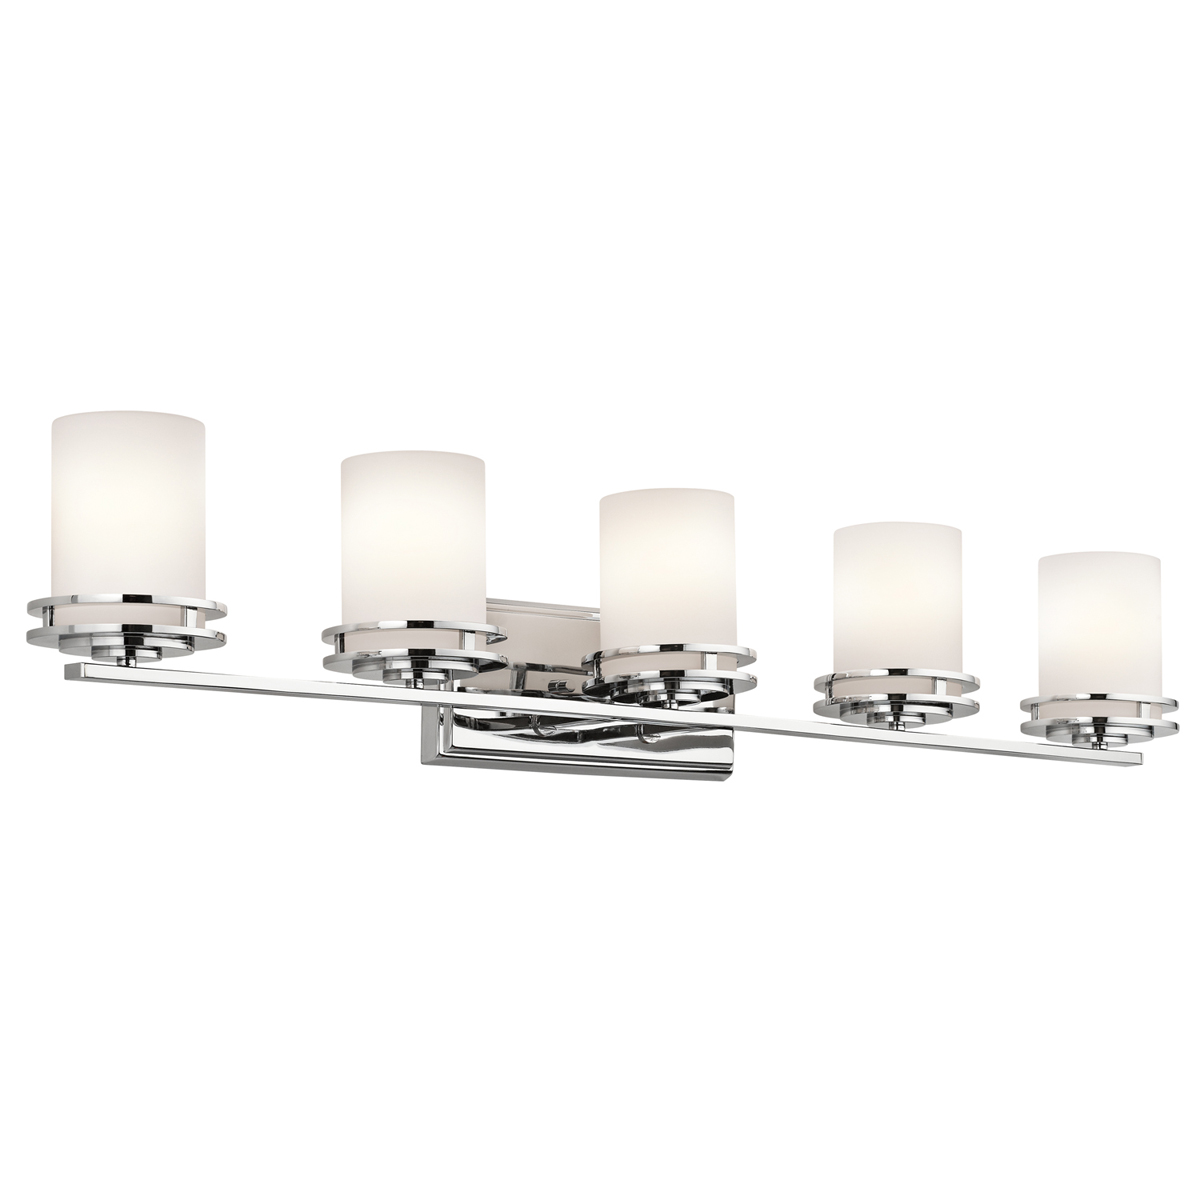 Kichler lighting 5085ch hendrik 5 light bath fixture in for Bathroom 5 light fixtures